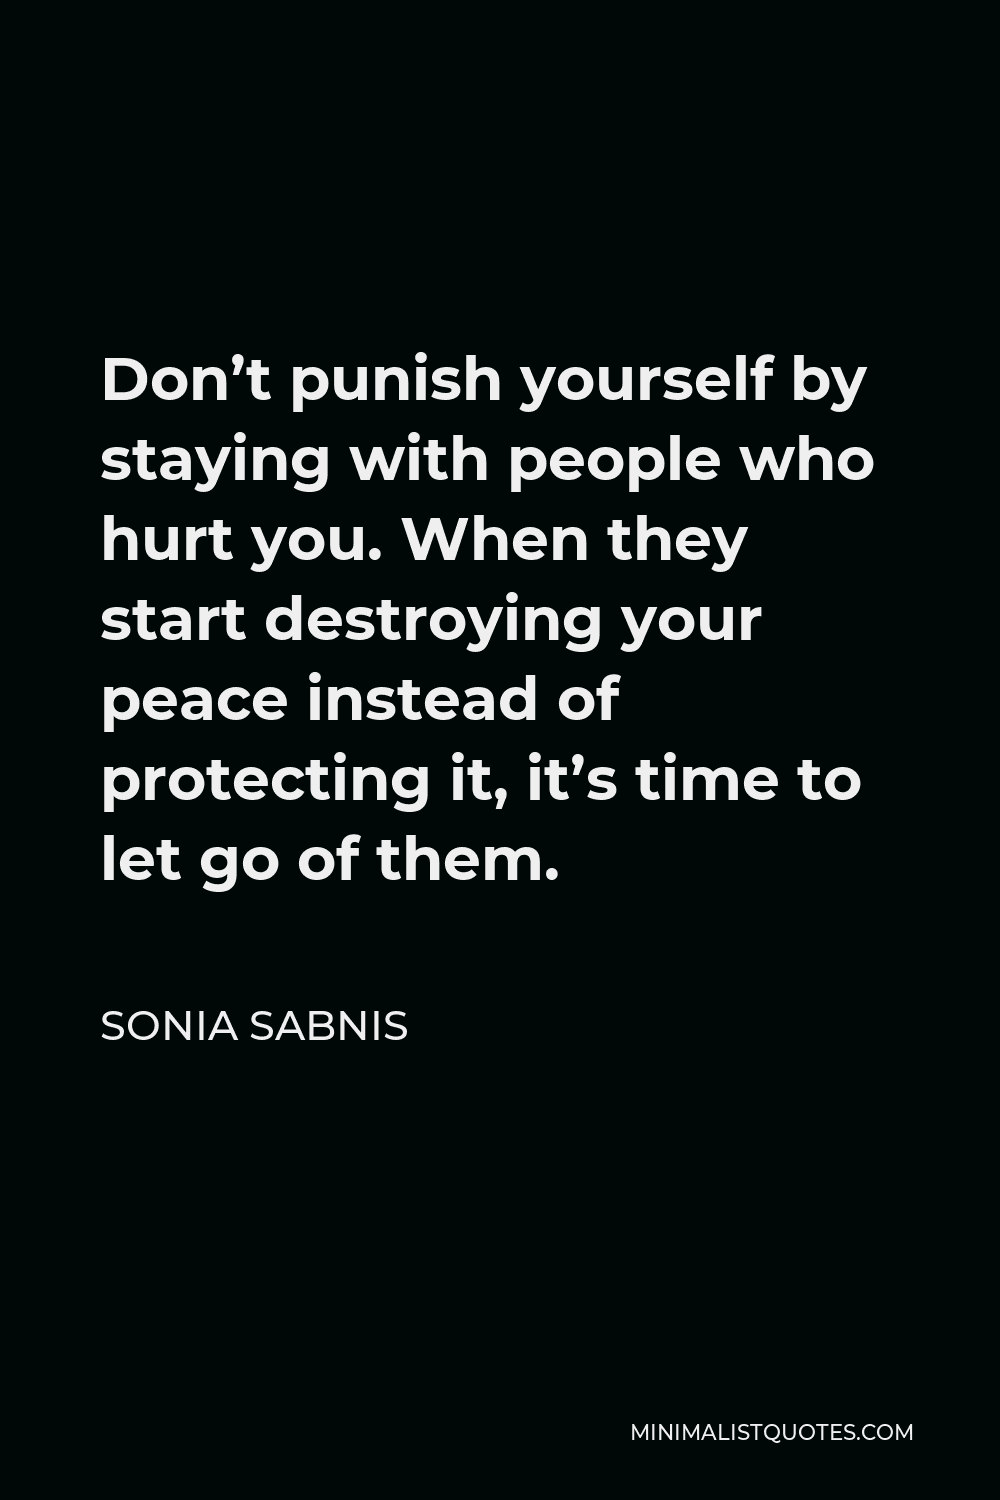 Sonia Sabnis Quote - Don't punish yourself by staying with people who hurt you. When they start destroying your peace instead of protecting it, it's time to let go of them.